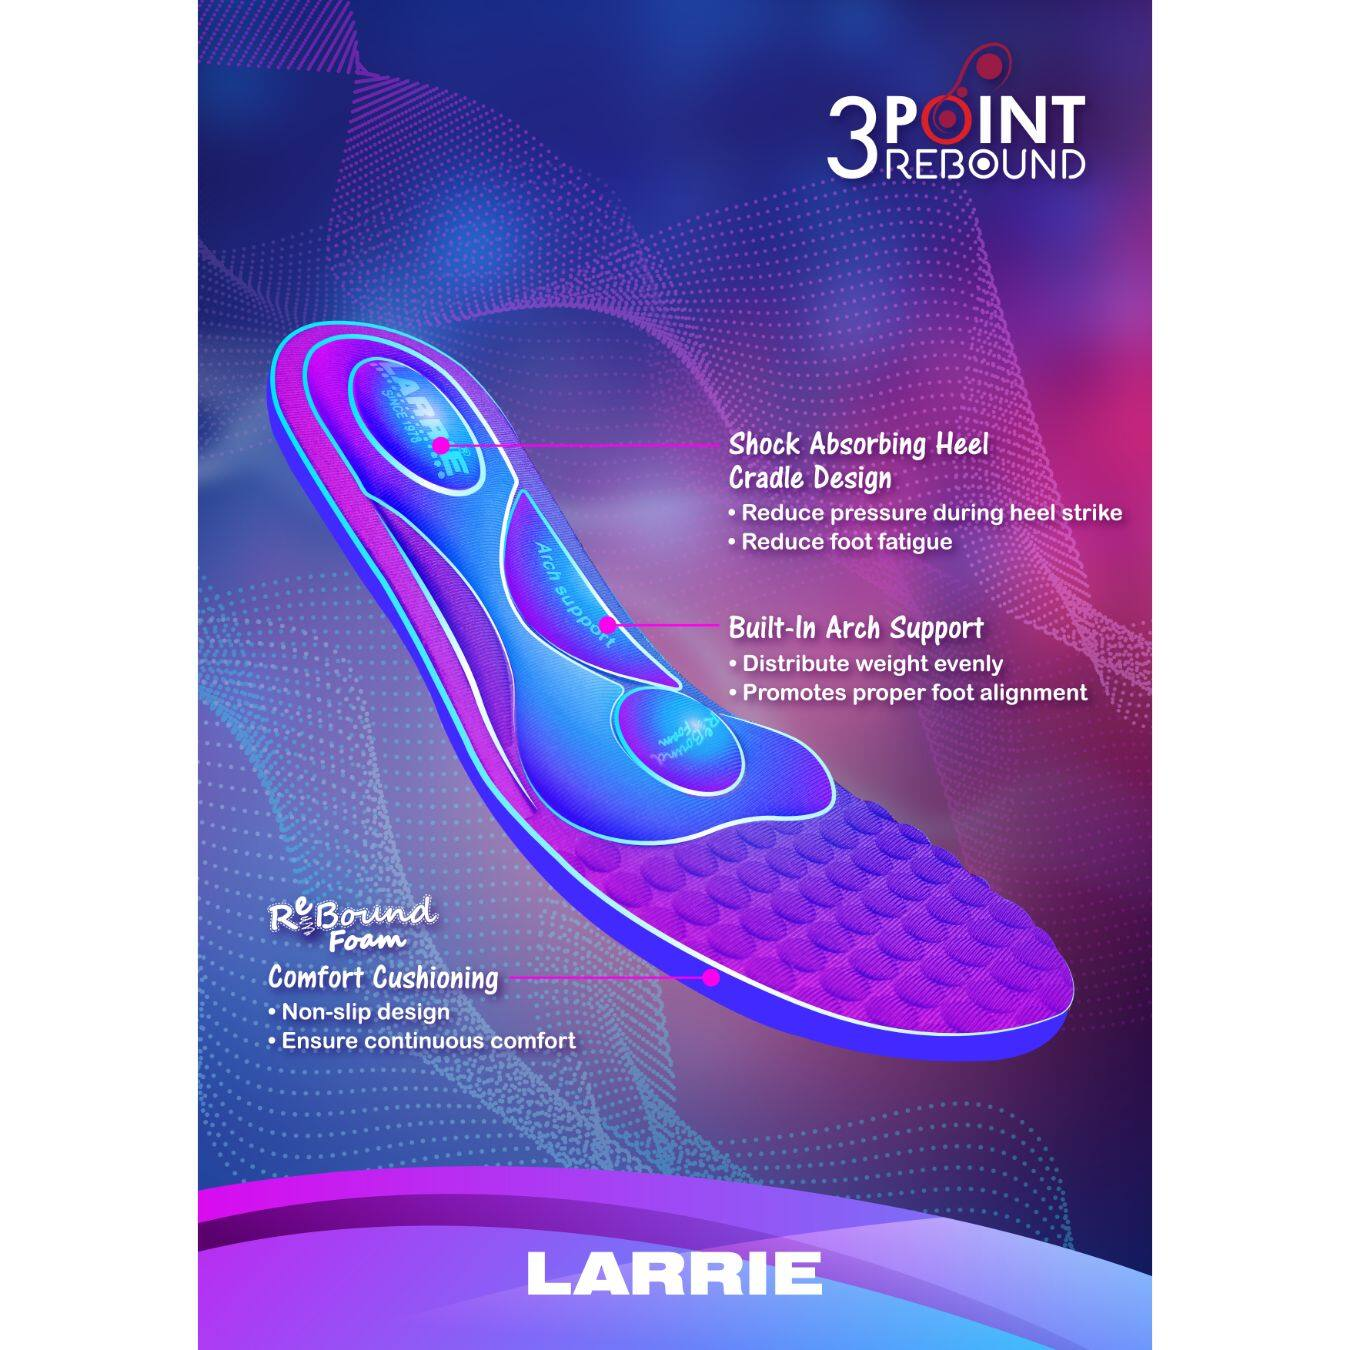 LARRIE Women Extra Cushion Insole Arch Support Multi Purpose Insoles - A2002-BK01